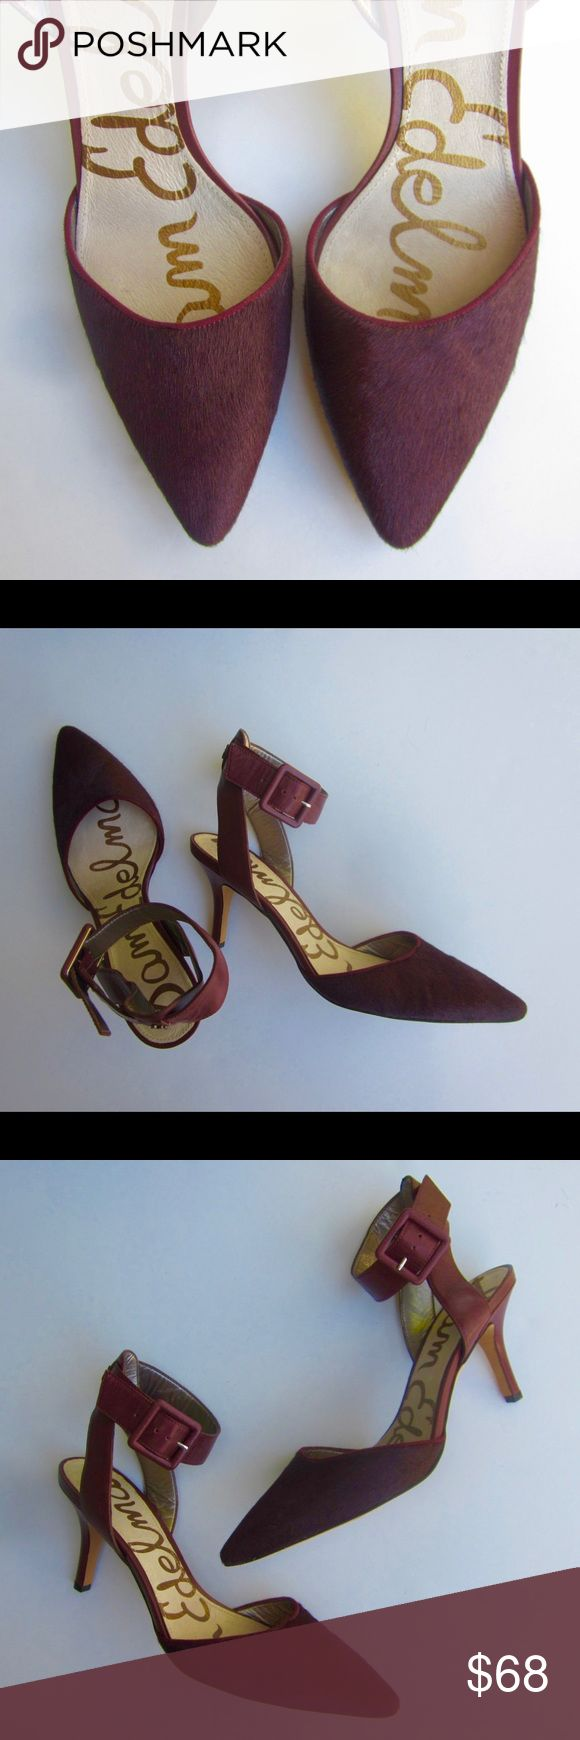 Sam Edelman heels size 8.5 Never worn Sam Edelman heels size 8.5. Real leather & fur that's painted burgundy. They are brand new & in perfect (unworn) condition. No low ball offers. Sam Edelman Shoes Heels